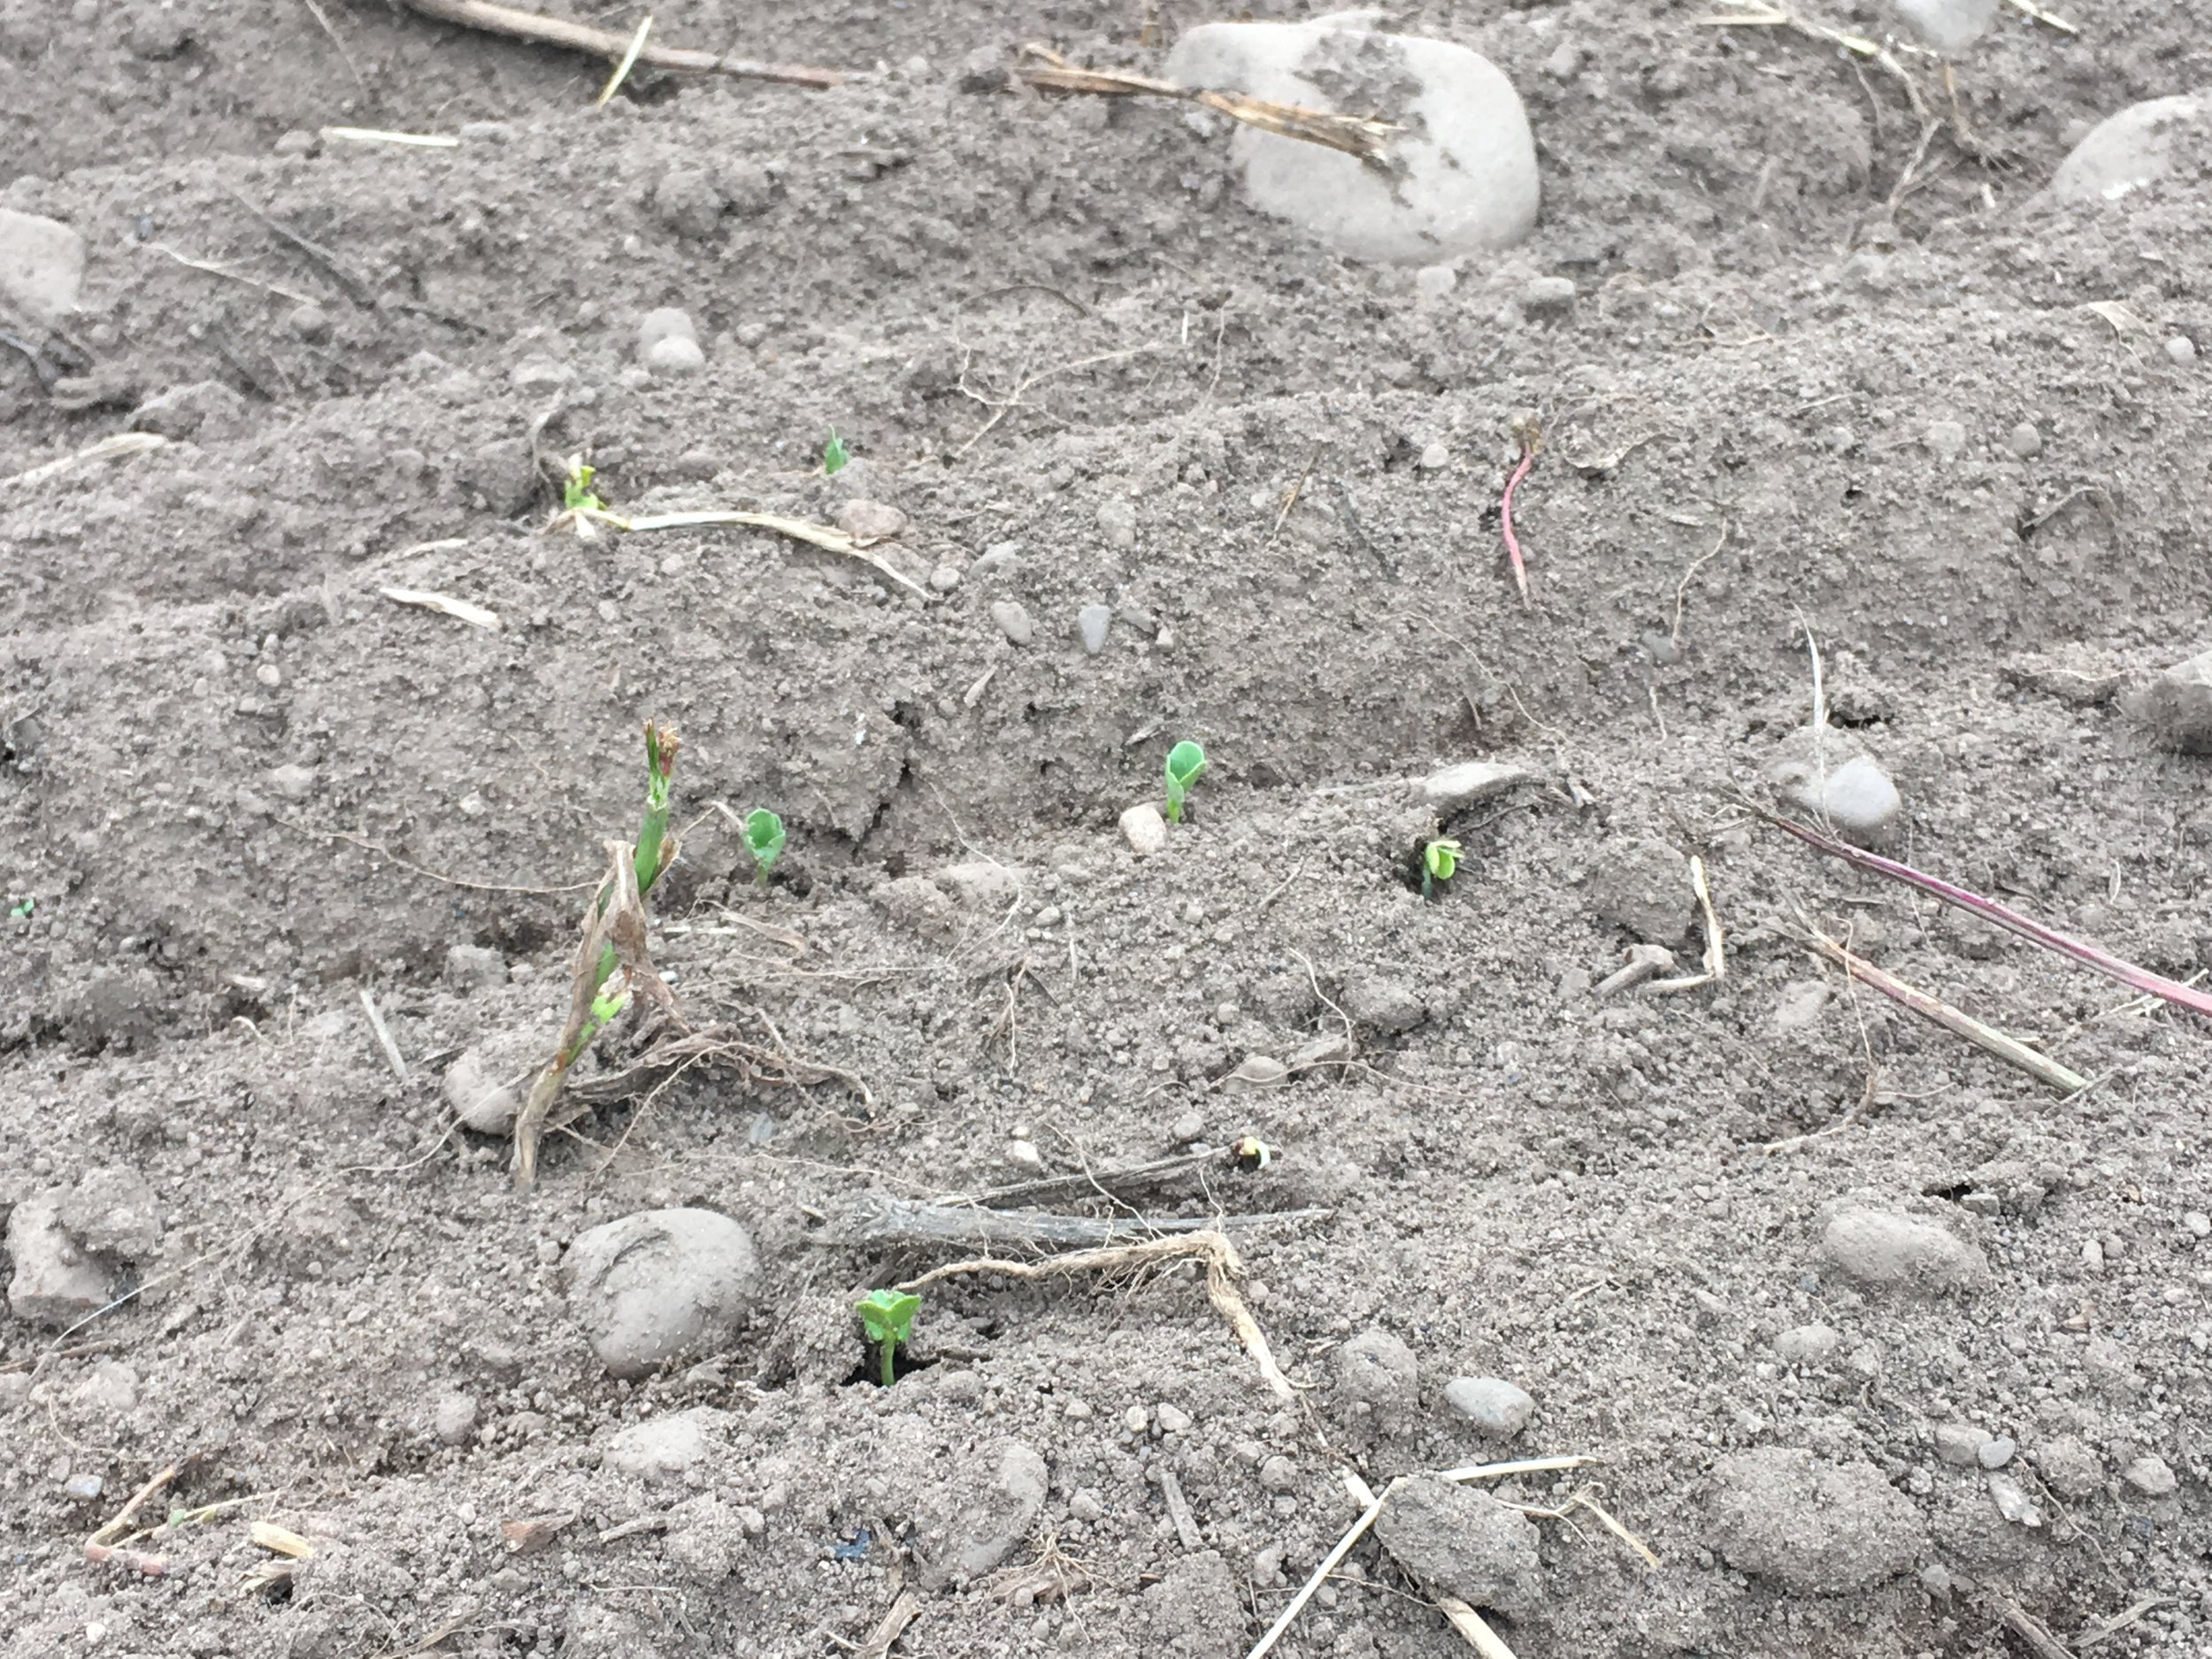 Only two days after seeding,  radish seedlings emerge and brighten the drab landscape.